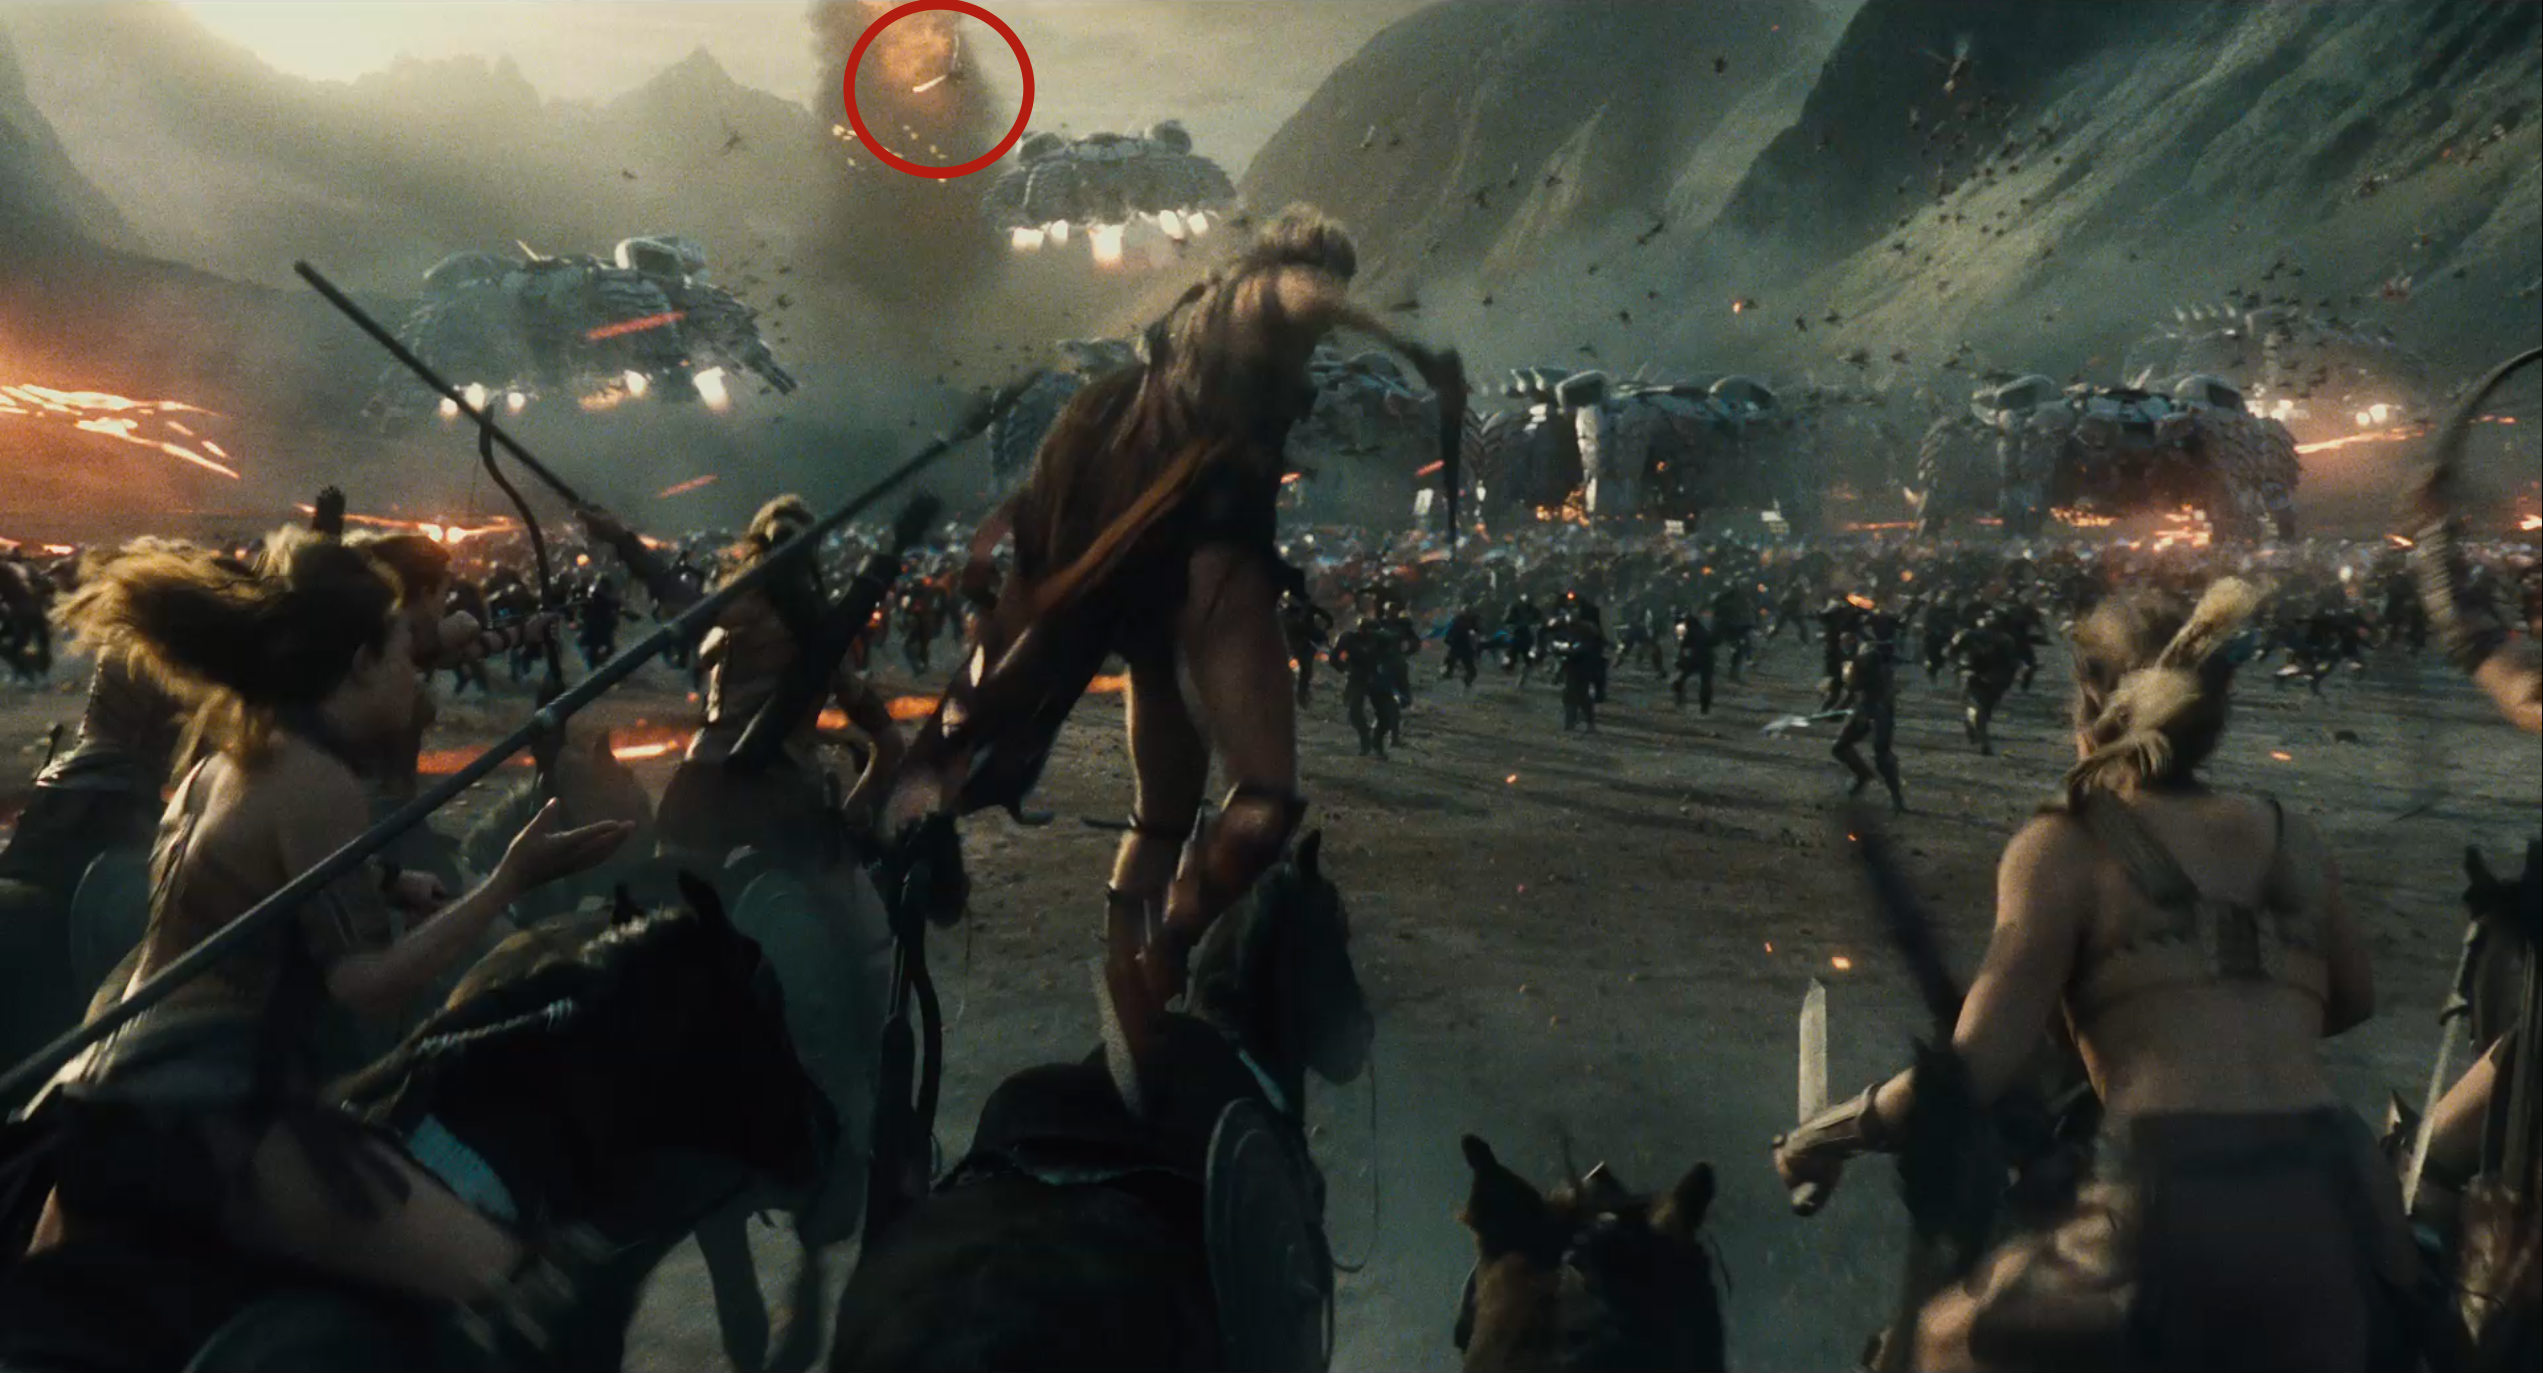 Is Justice League Going To Introduce Hawkman And Hawkgirl?